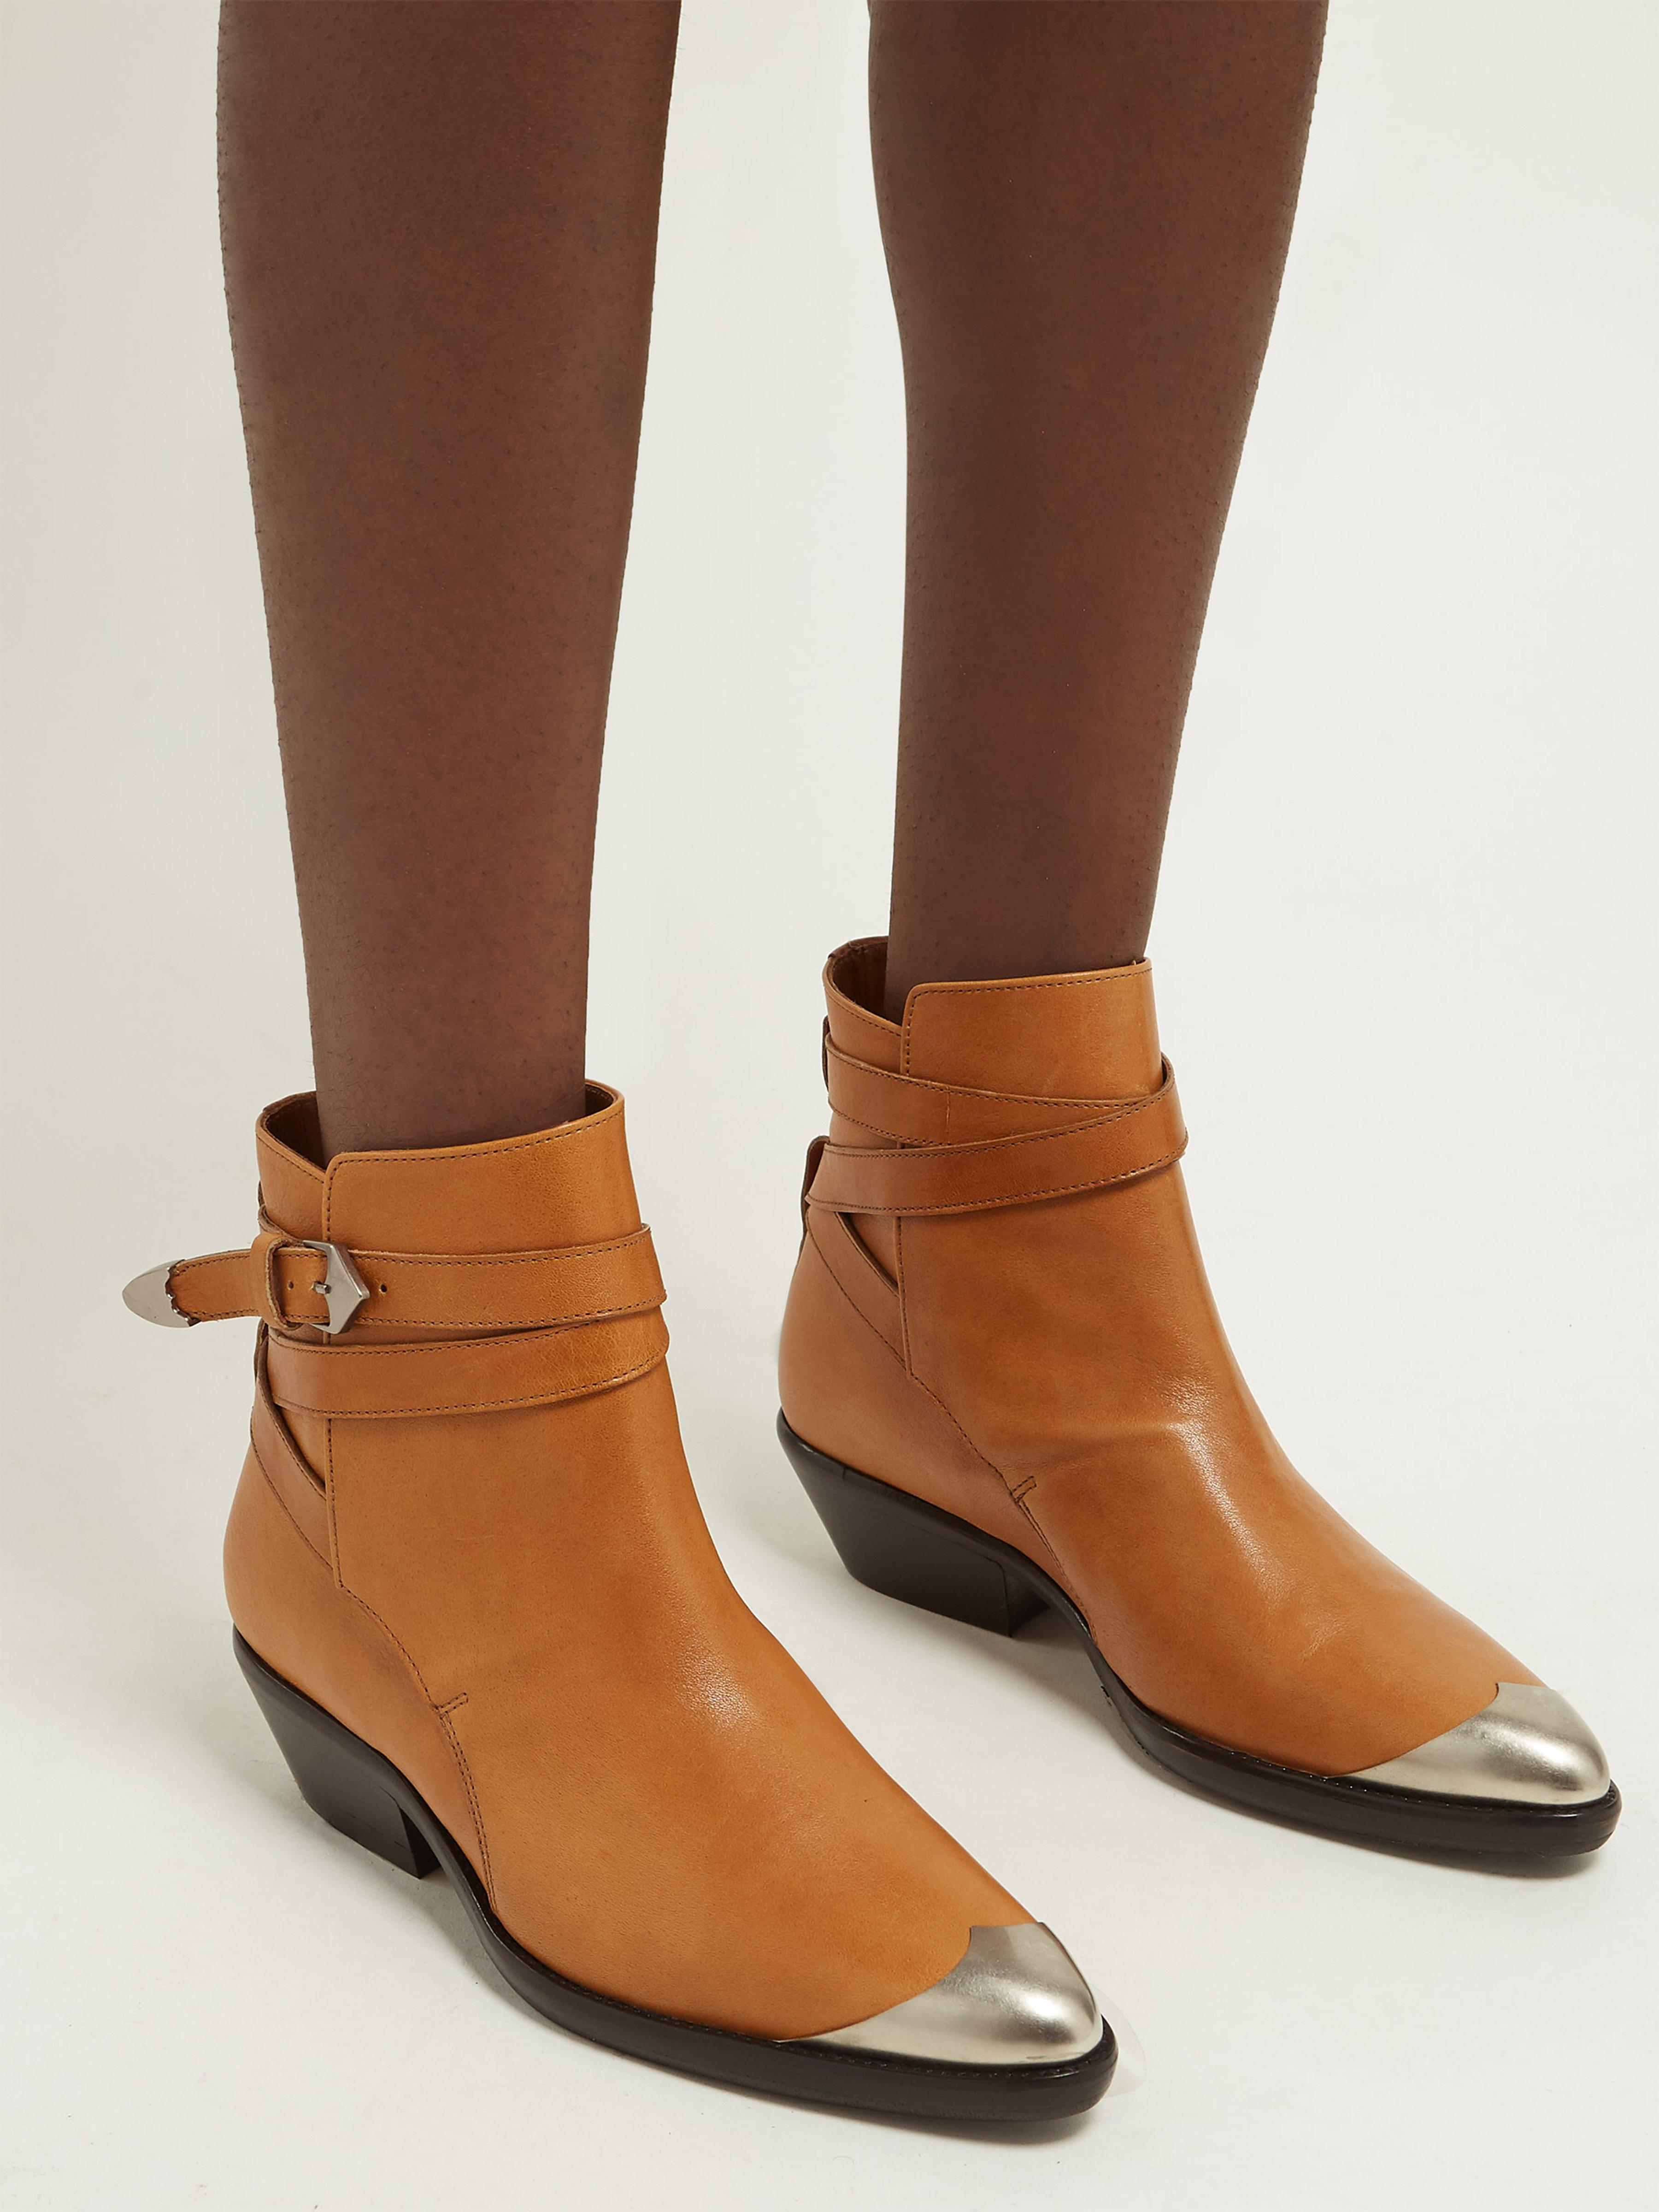 14b918bbf Isabel Marant Donee Metal Toecap Leather Ankle Boots in Brown - Lyst